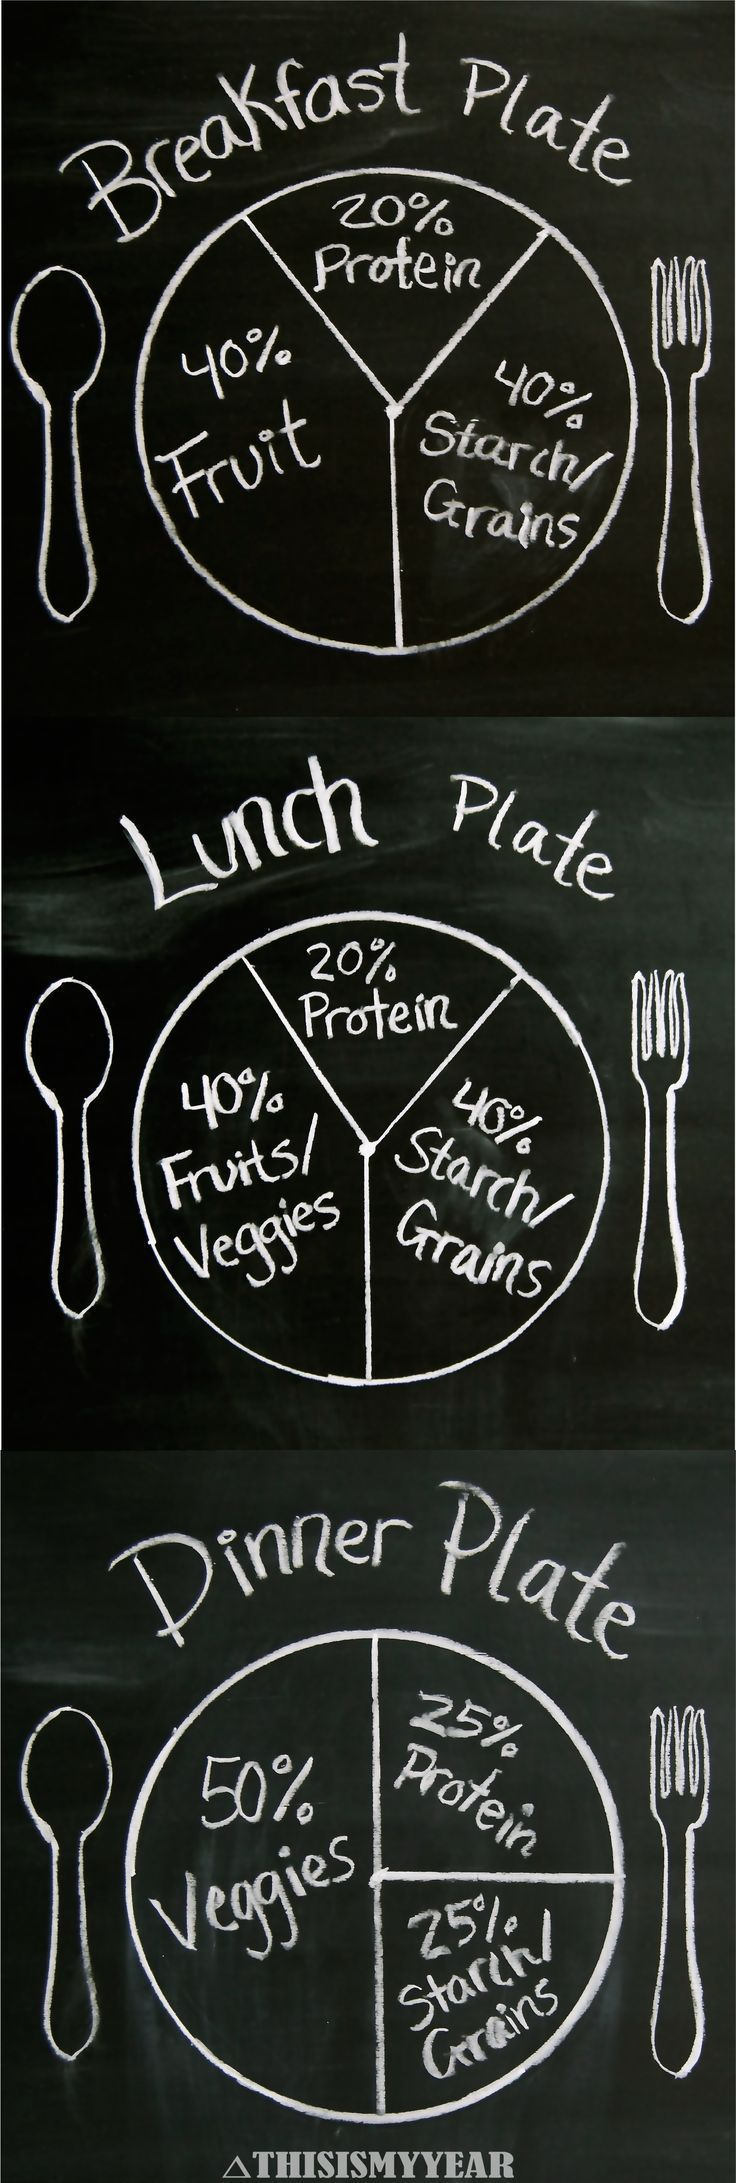 Plant Based Diet Plate Portions. A great guideline to use when fixing your plate. #thisismyyear #plantbased